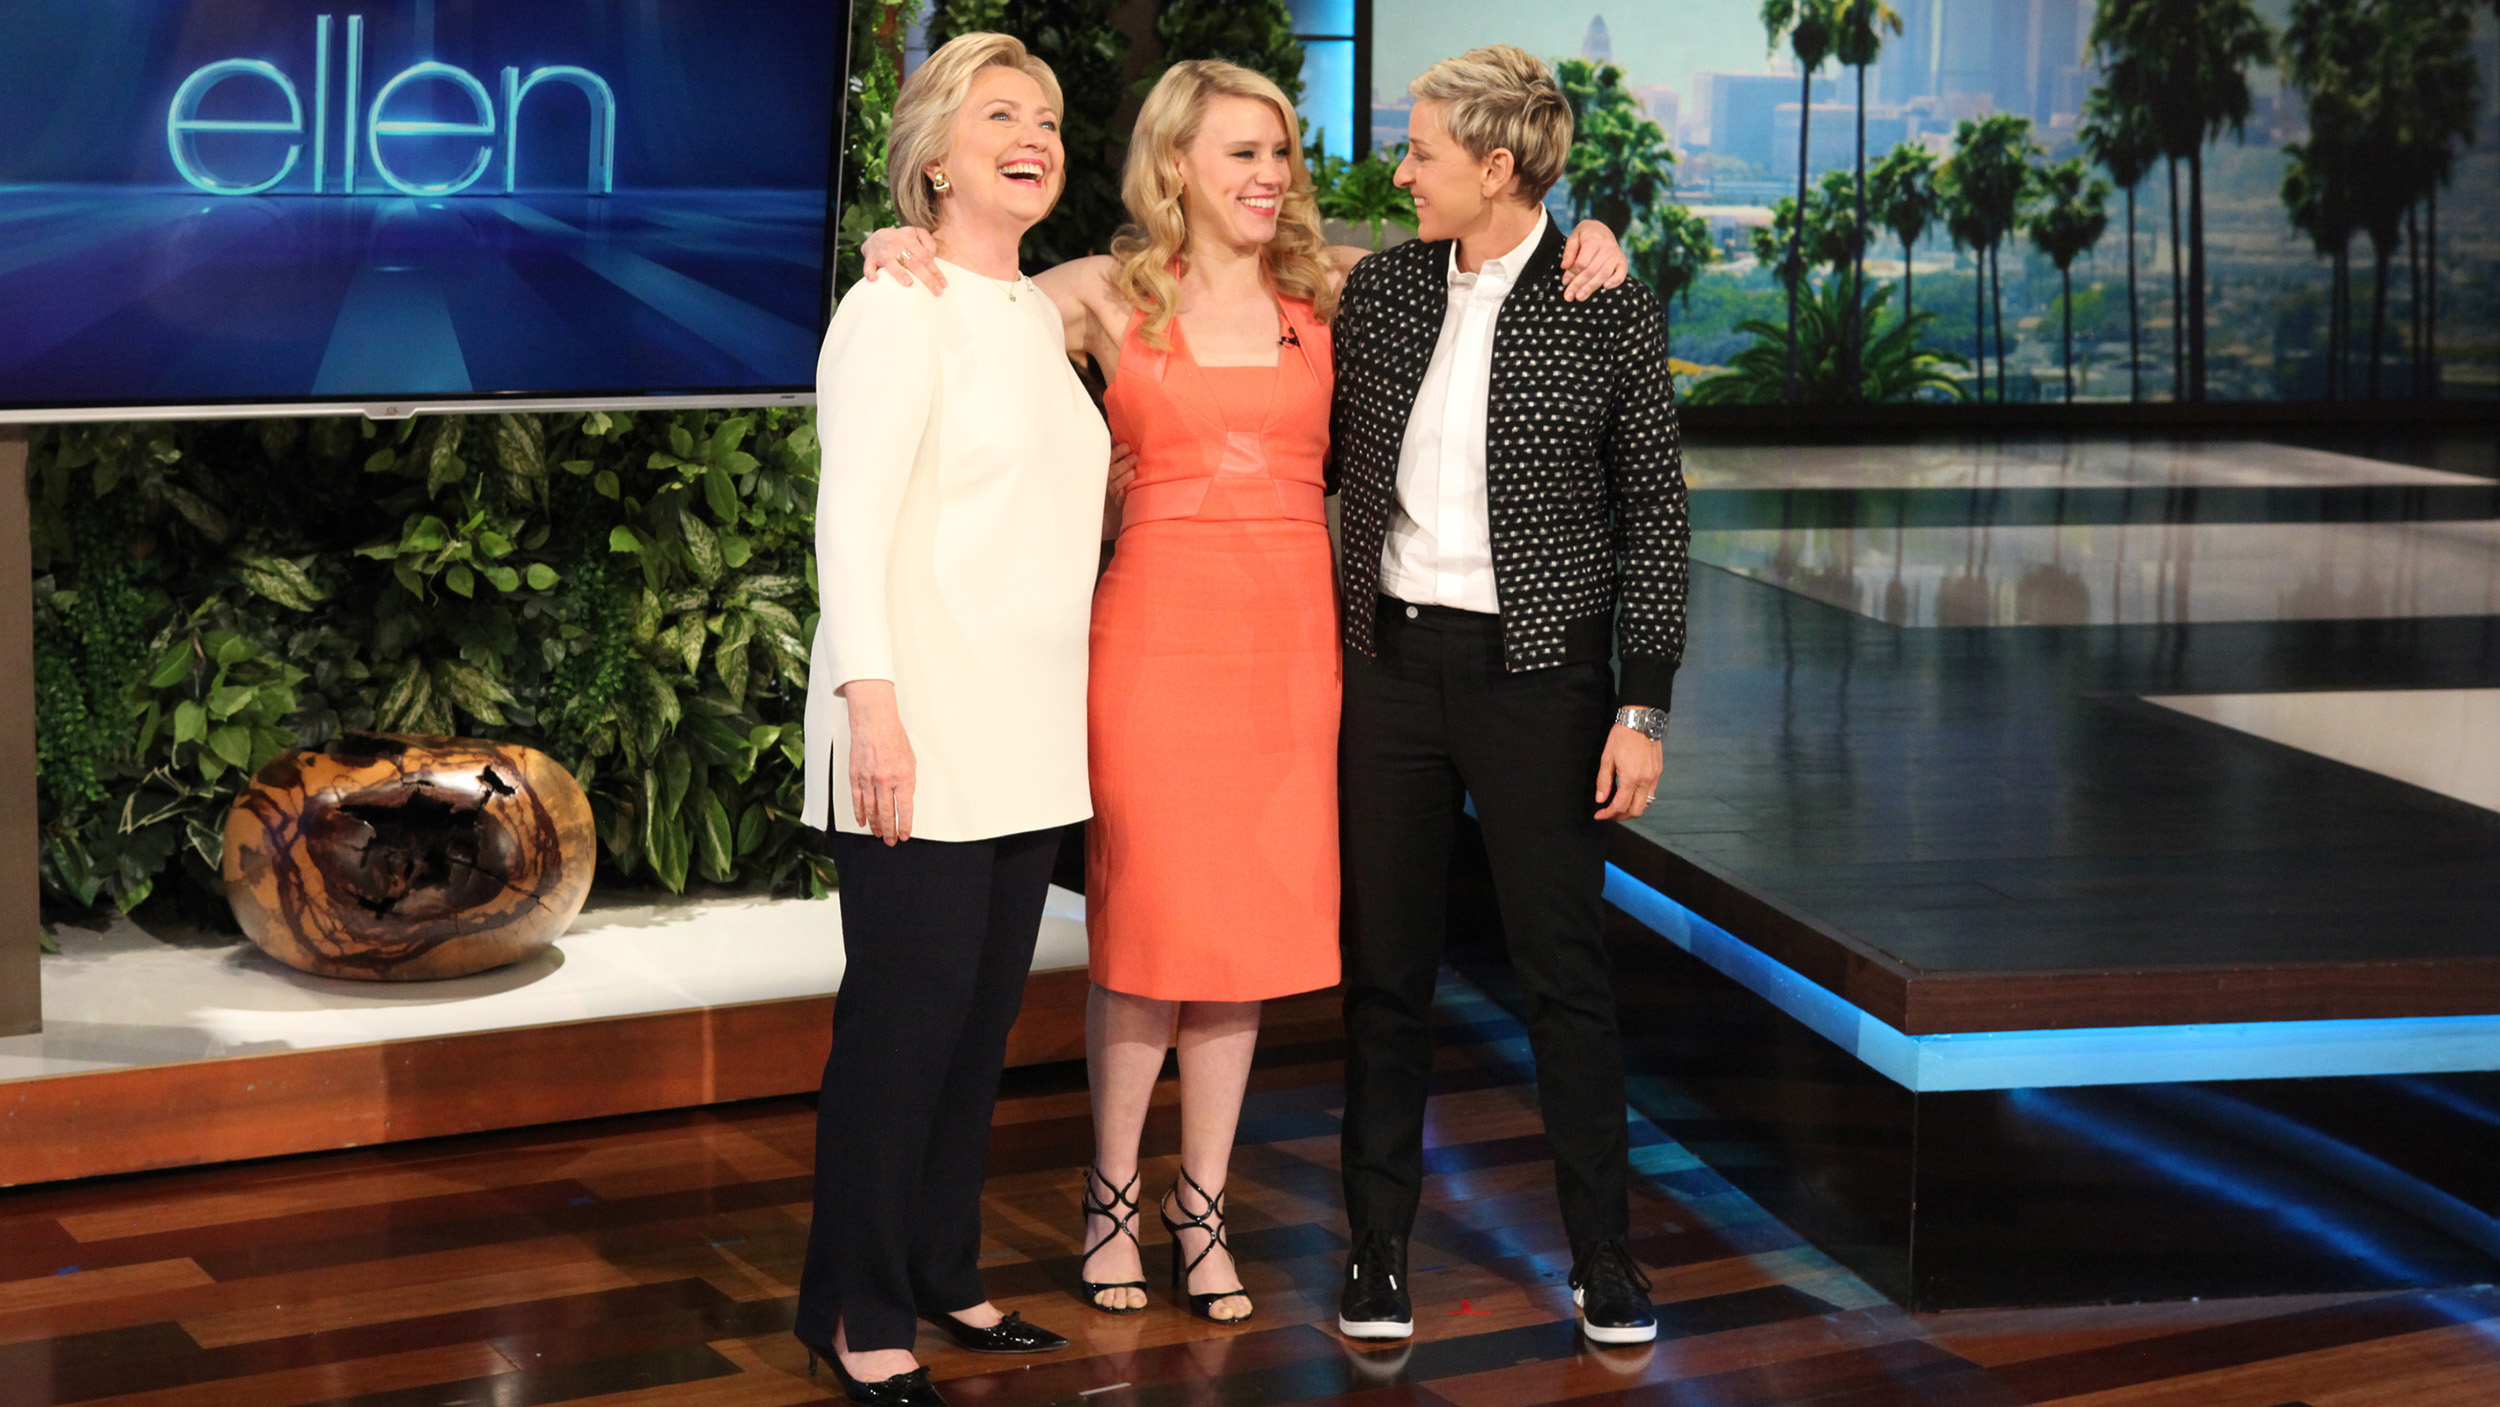 Kate Mckinnon >> Watch Kate McKinnon impersonate Ellen DeGeneres and ...